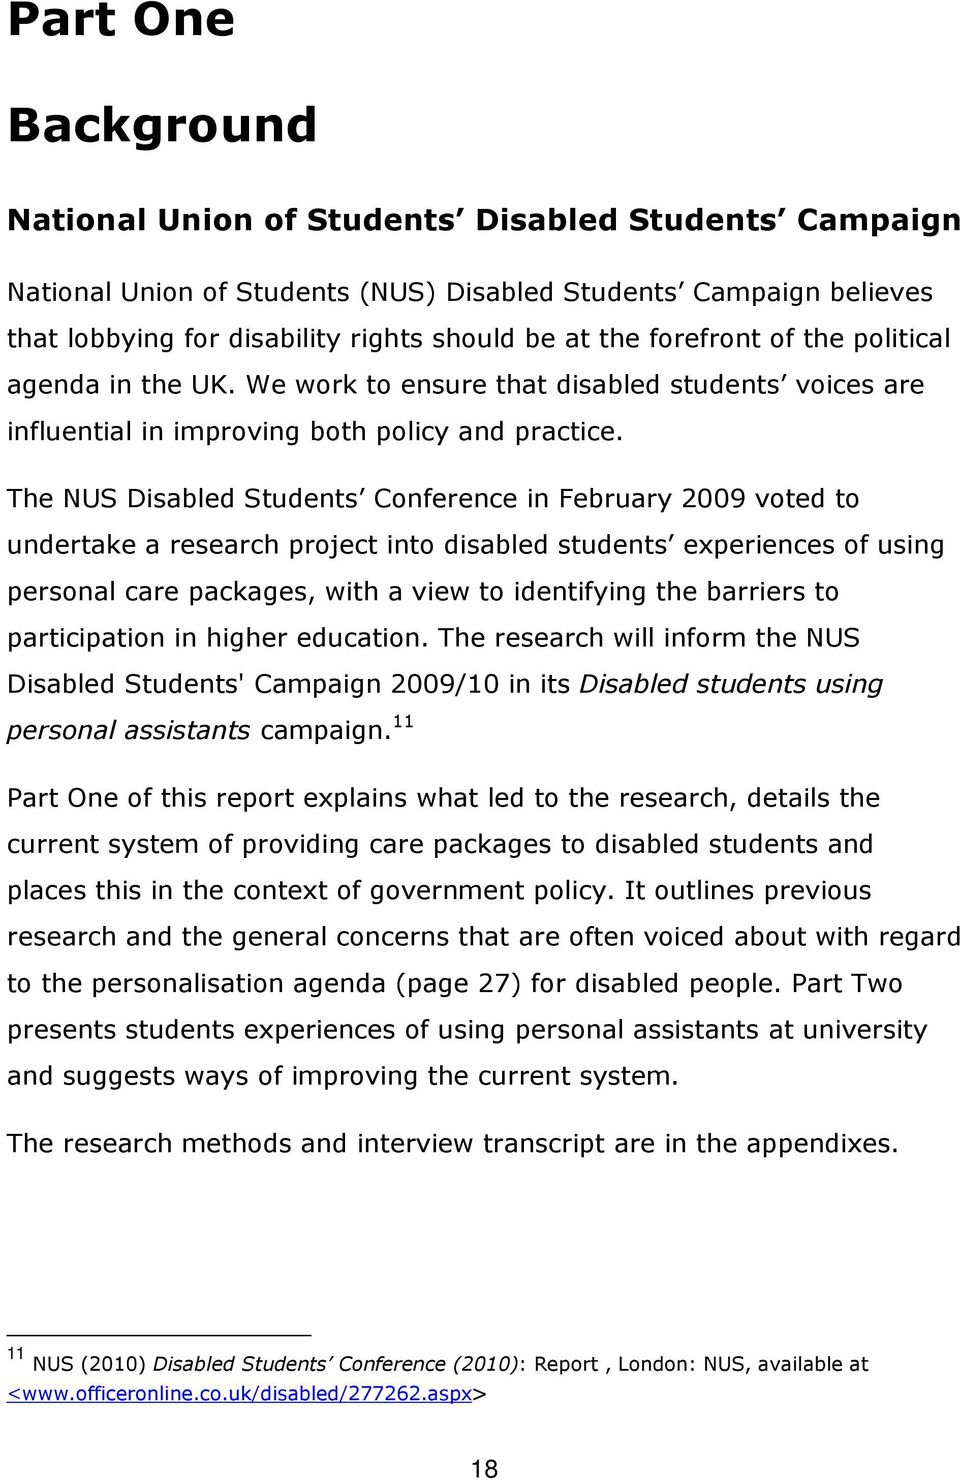 The NUS Disabled Students Conference in February 2009 voted to undertake a research project into disabled students experiences of using personal care packages, with a view to identifying the barriers